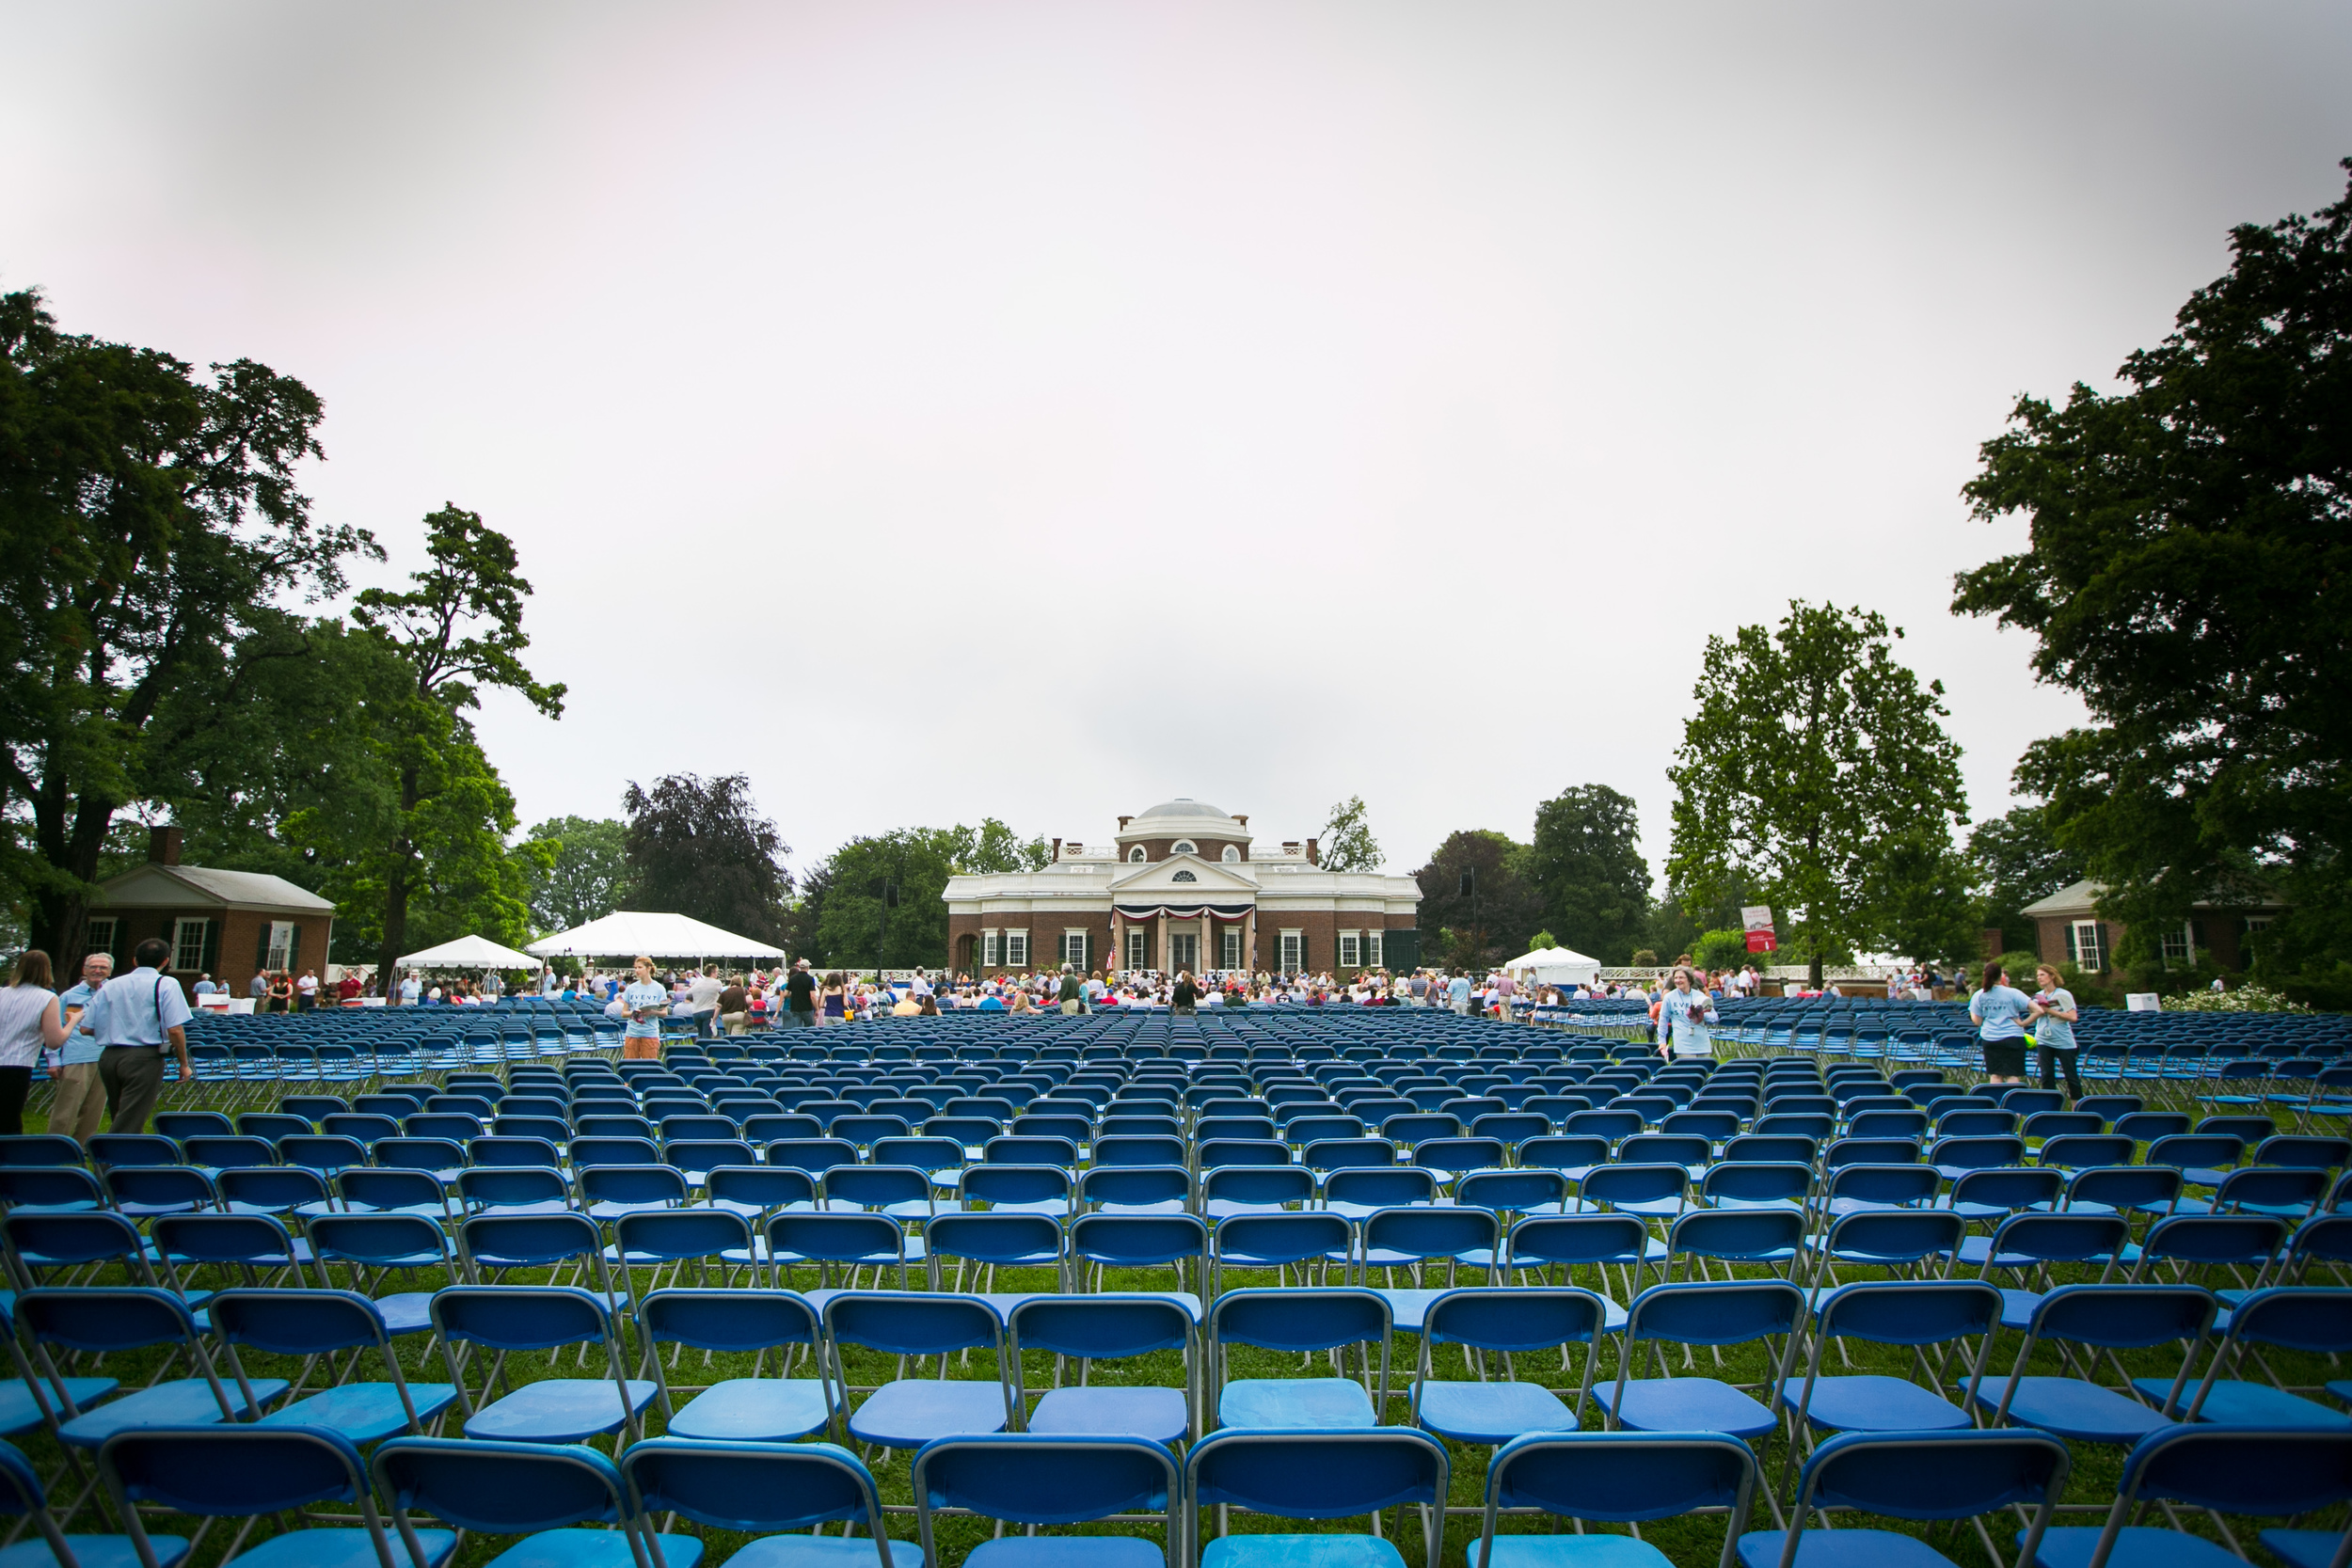 Monticello Independence Day - Rental and Staging - Video Production and Live Streaming - Live Events - The AV Company